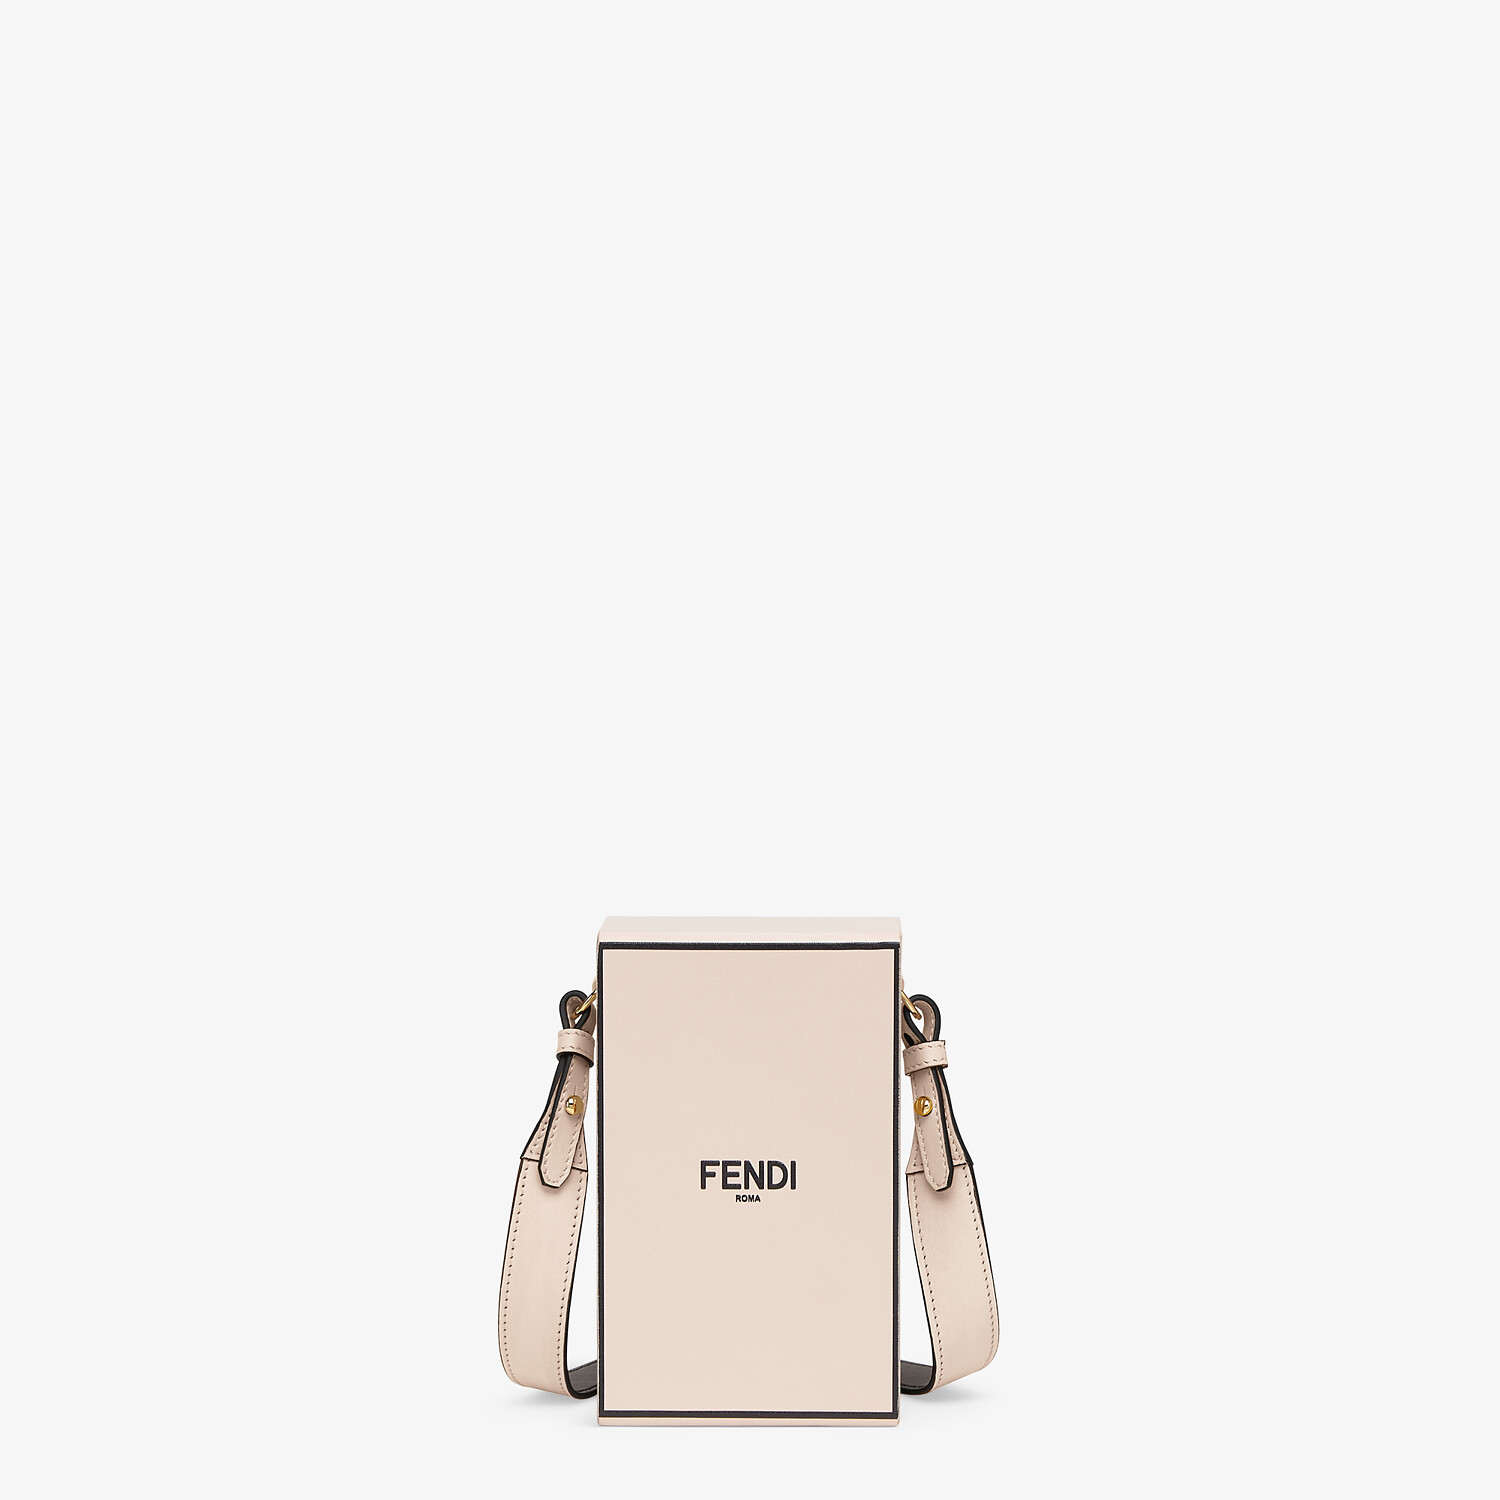 FENDI VERTICAL BOX - Tasche aus Leder in Rosa - view 1 detail